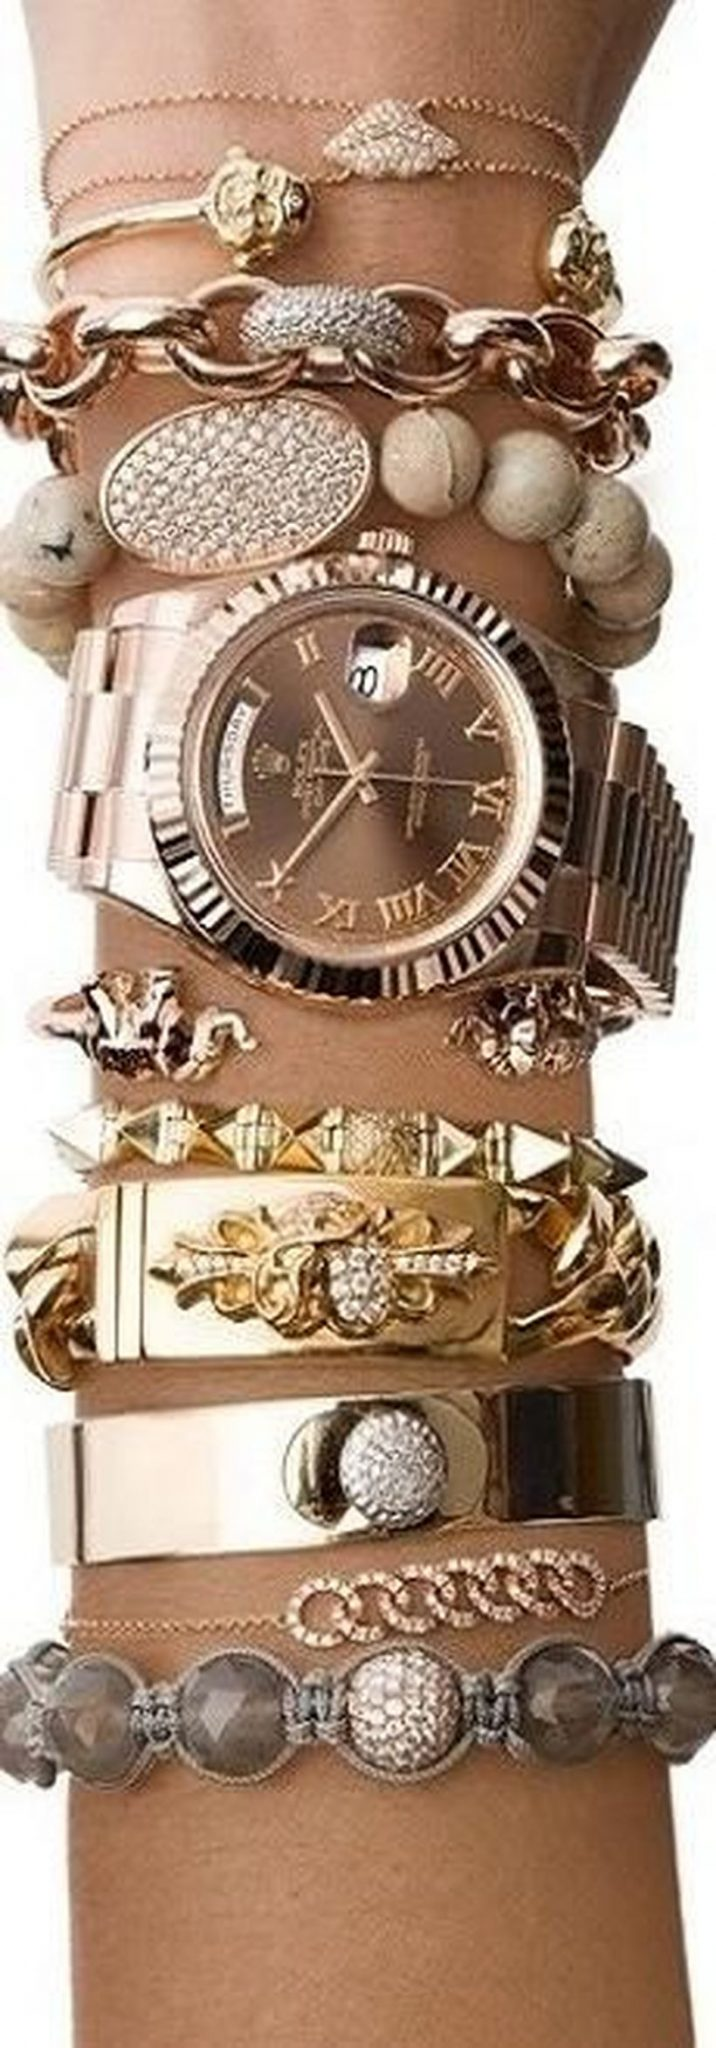 Stacked arm candies jewelry ideas 67